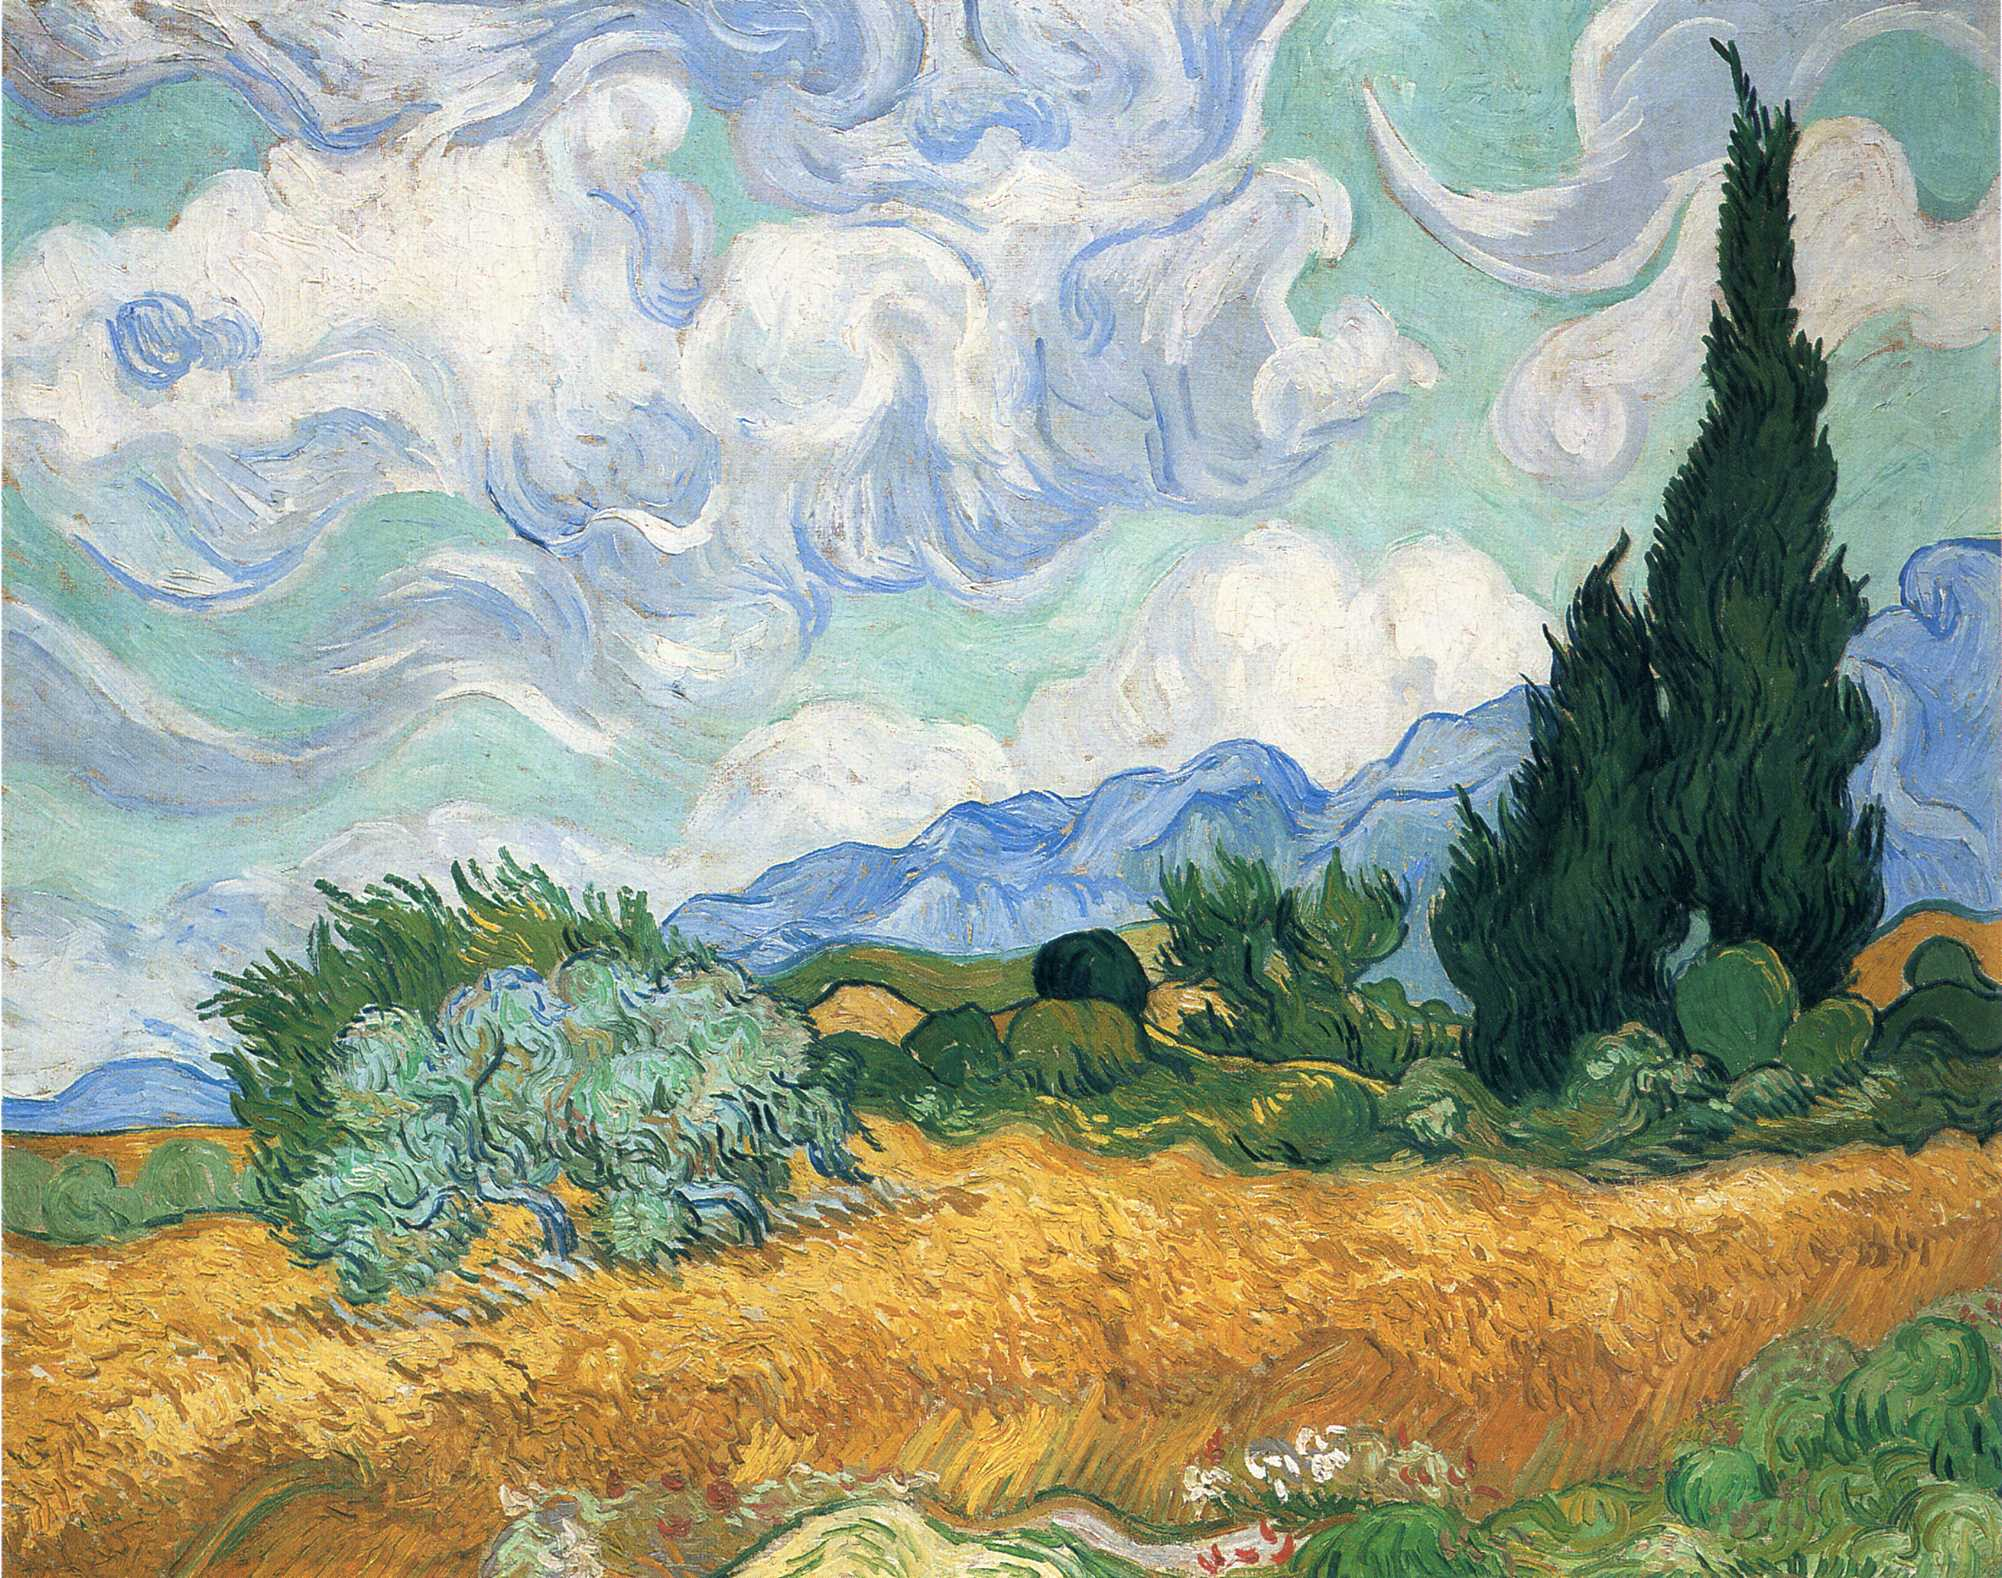 an analysis of wheat field and cypress trees by vincent van gogh The glowing wheat field, the olive trees of subtle gray in which all the colors of the  picture seem to be mingled, the shaggy wavering cypresses, and the turbulent.